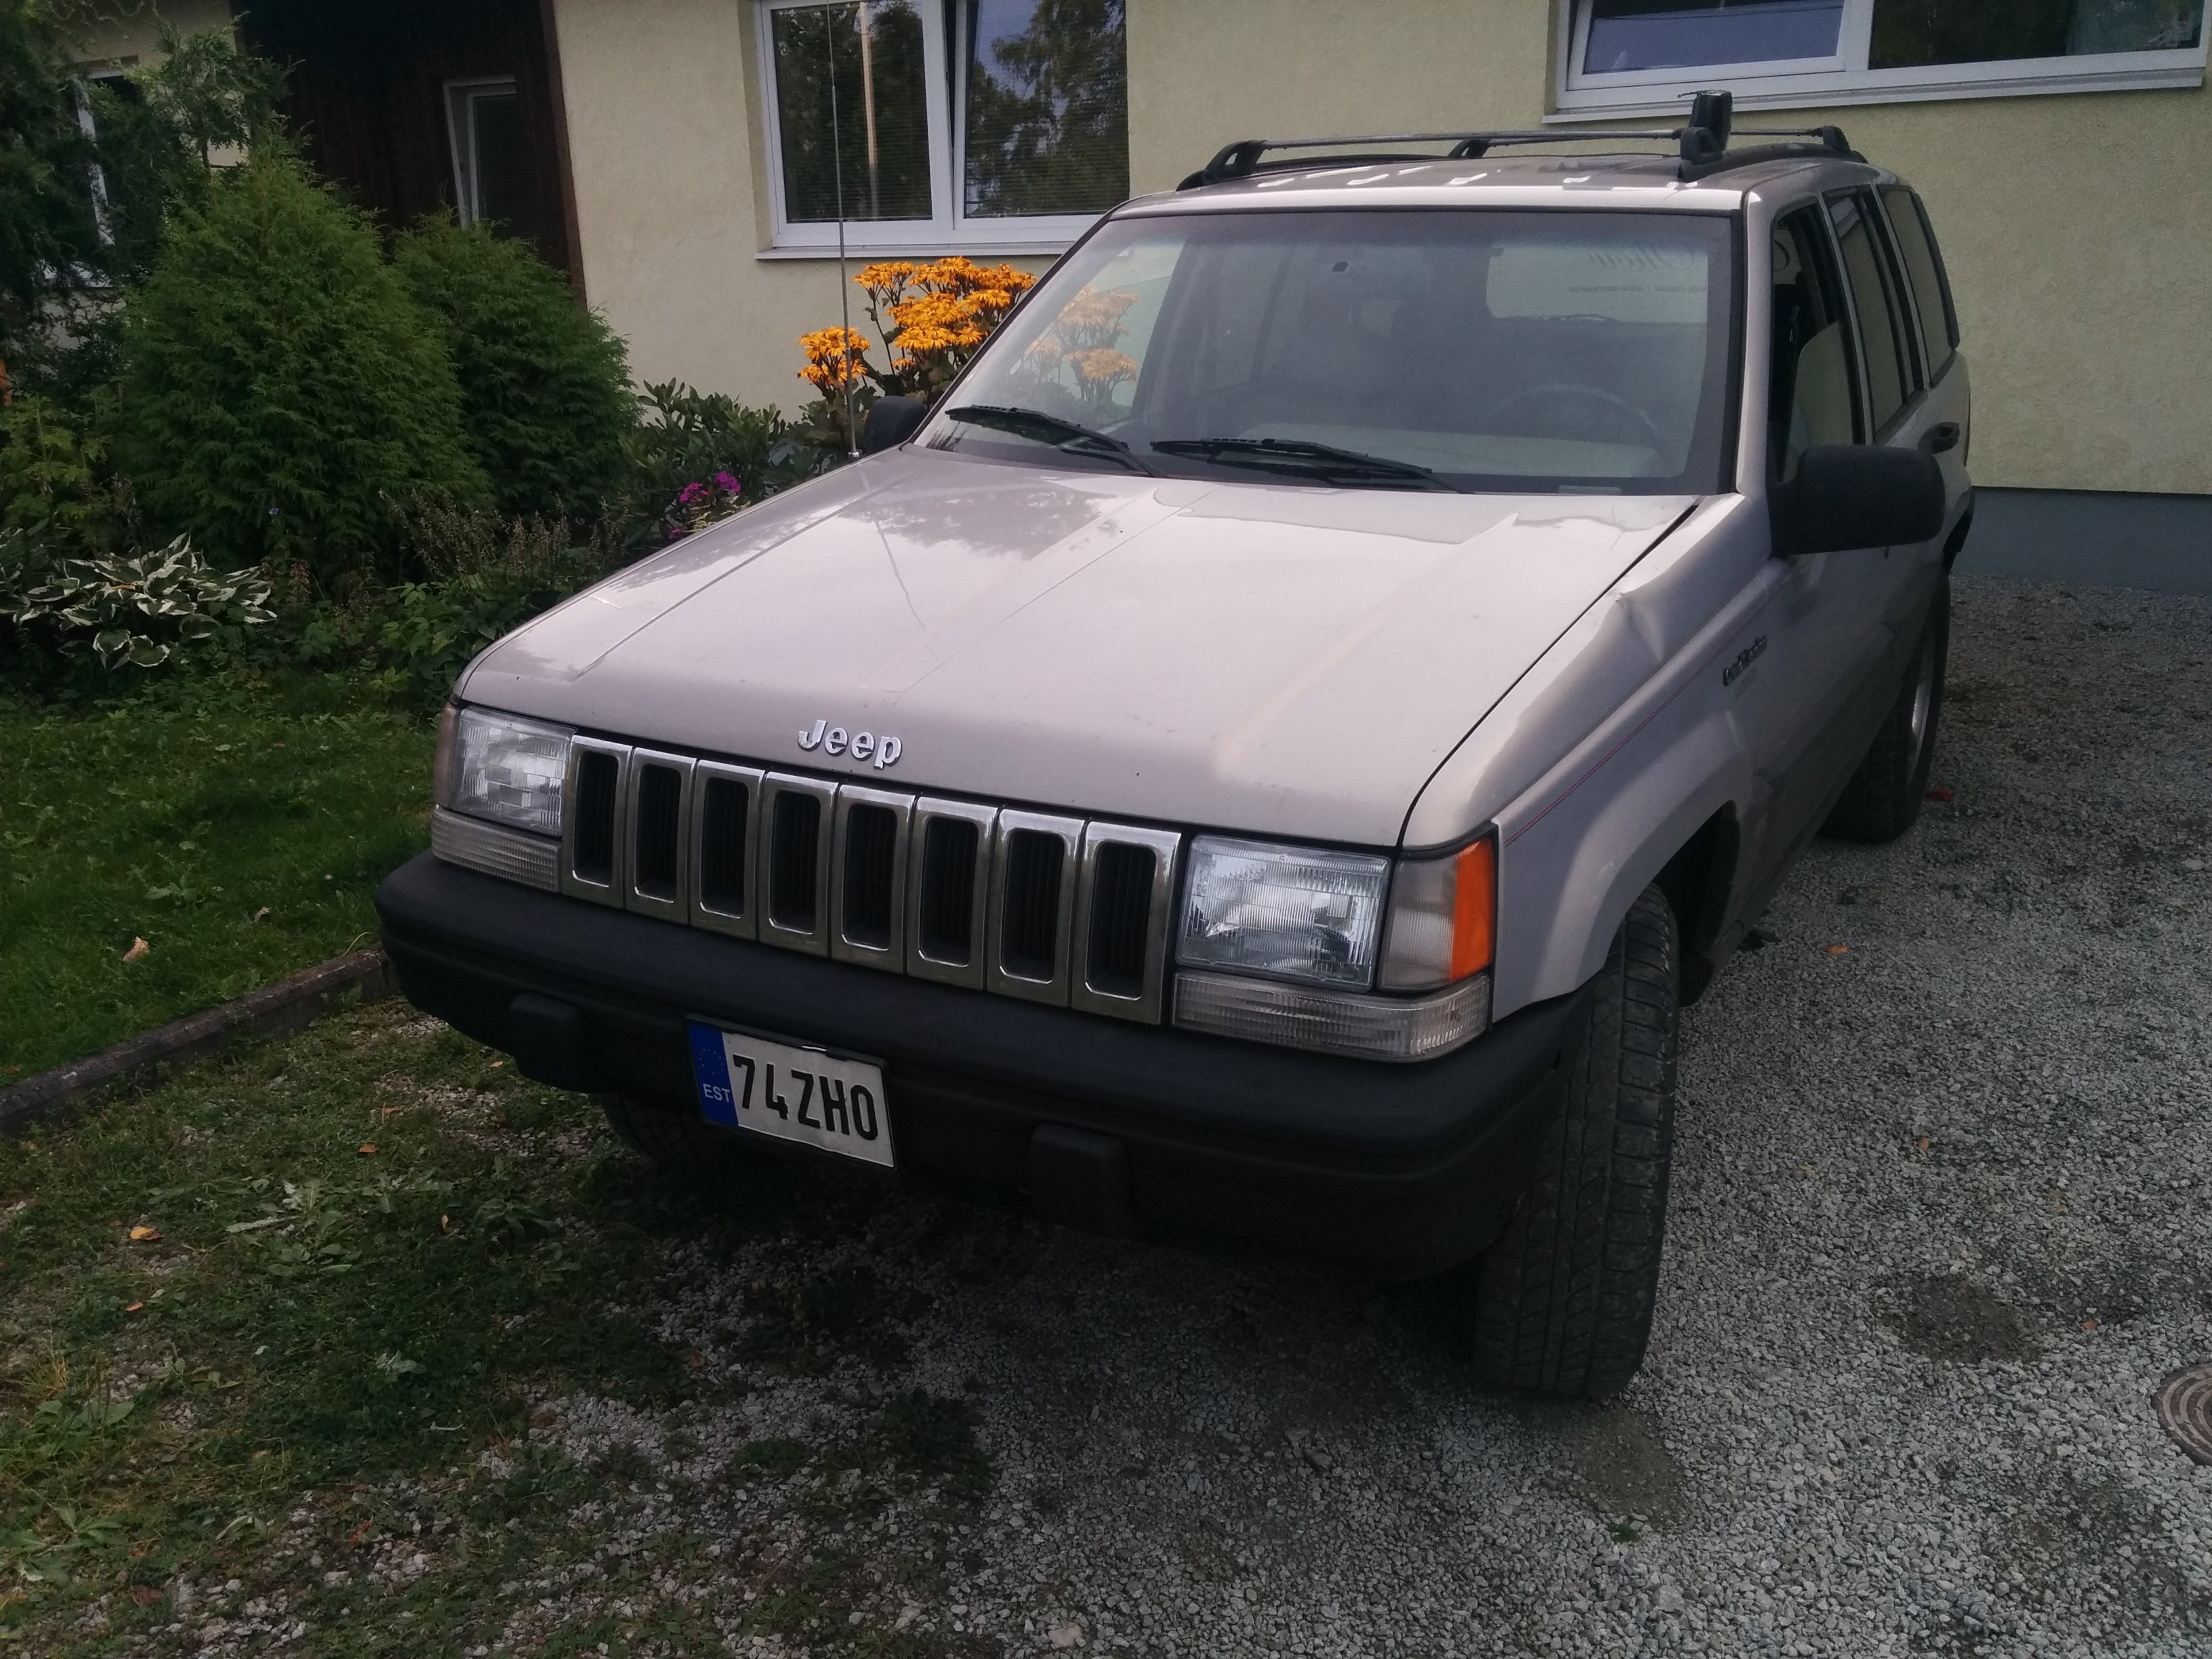 95 jeep grand cherokee laredo 5 2 ericthecarguy ericthecarguy stay dirty. Cars Review. Best American Auto & Cars Review